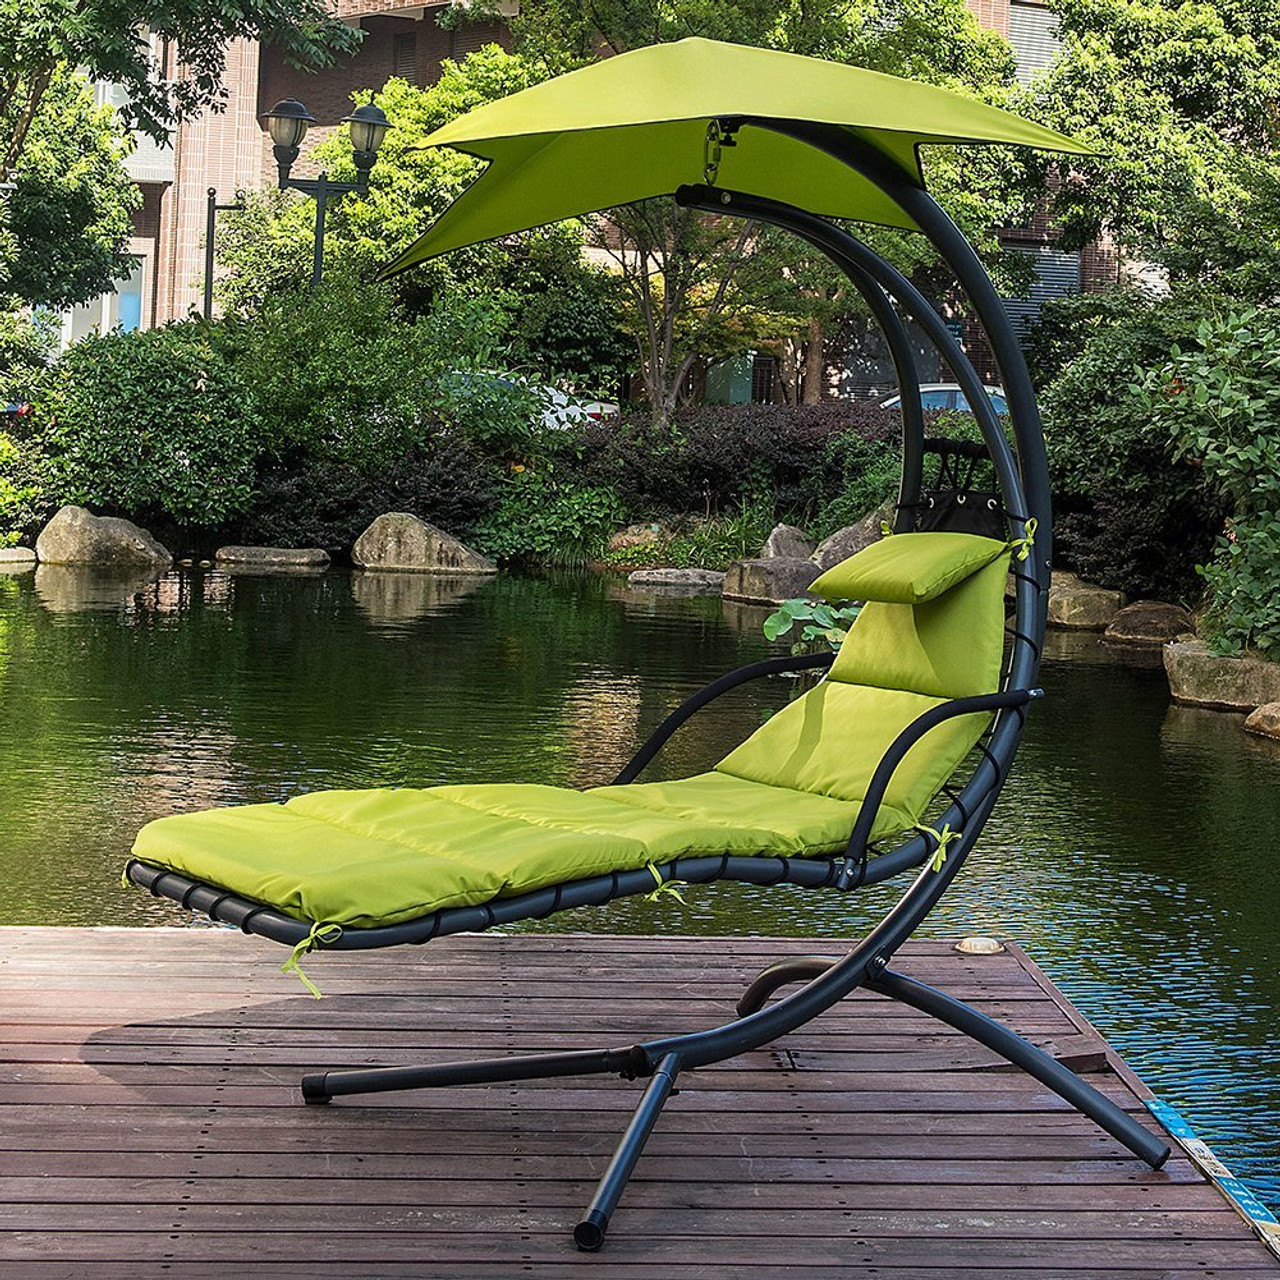 outdoor dream chair lift rentals apple green lazy daze hammocks with umbrella hanging chaise lounge arc curved hammock